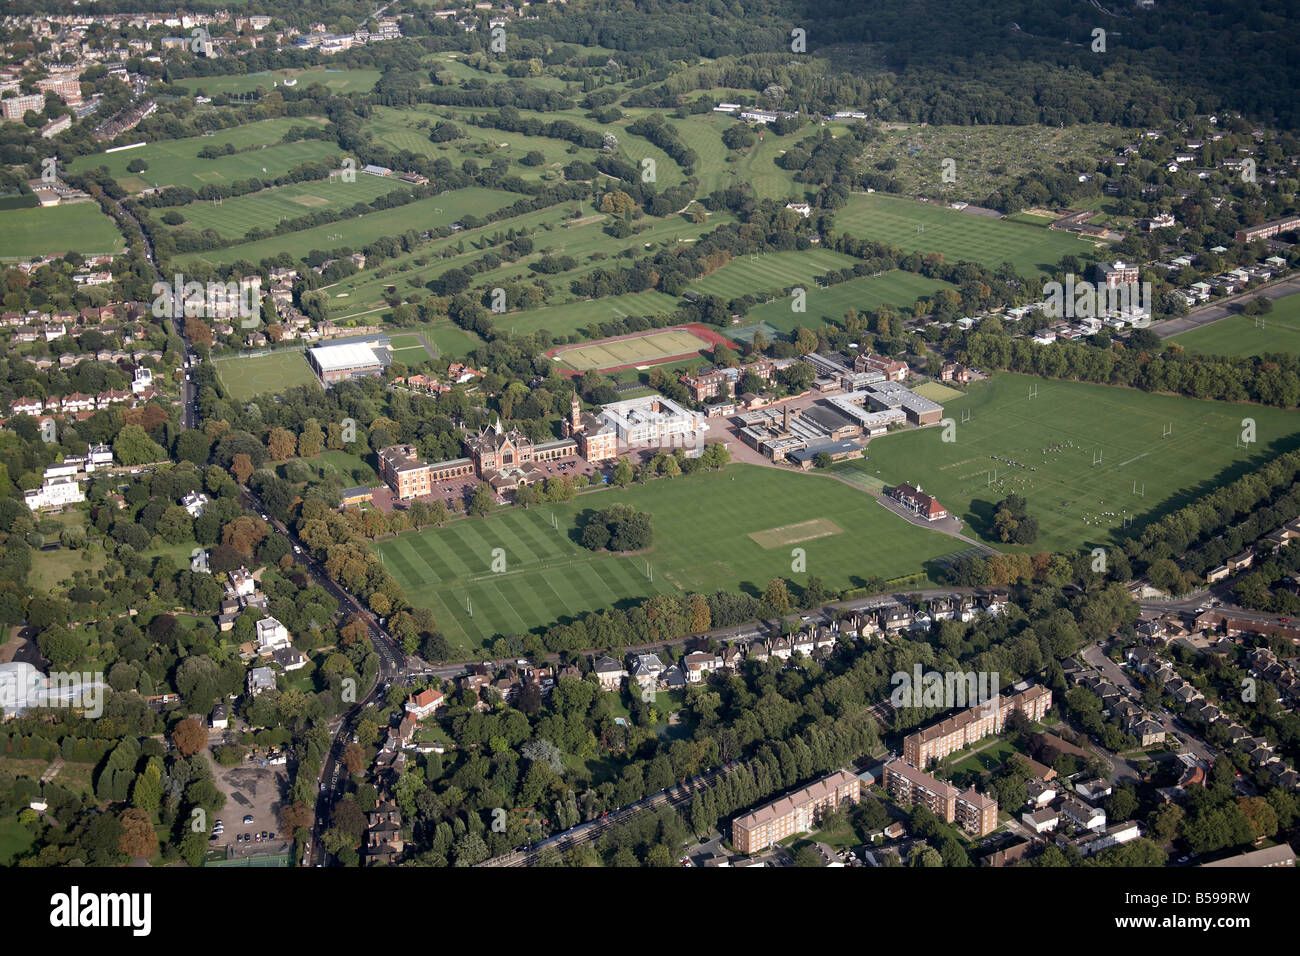 Aerial view south east of Dulwich College playing fields tennis courts Alleyn Park Road Dulwich Sydenham Hill Golf - Stock Image